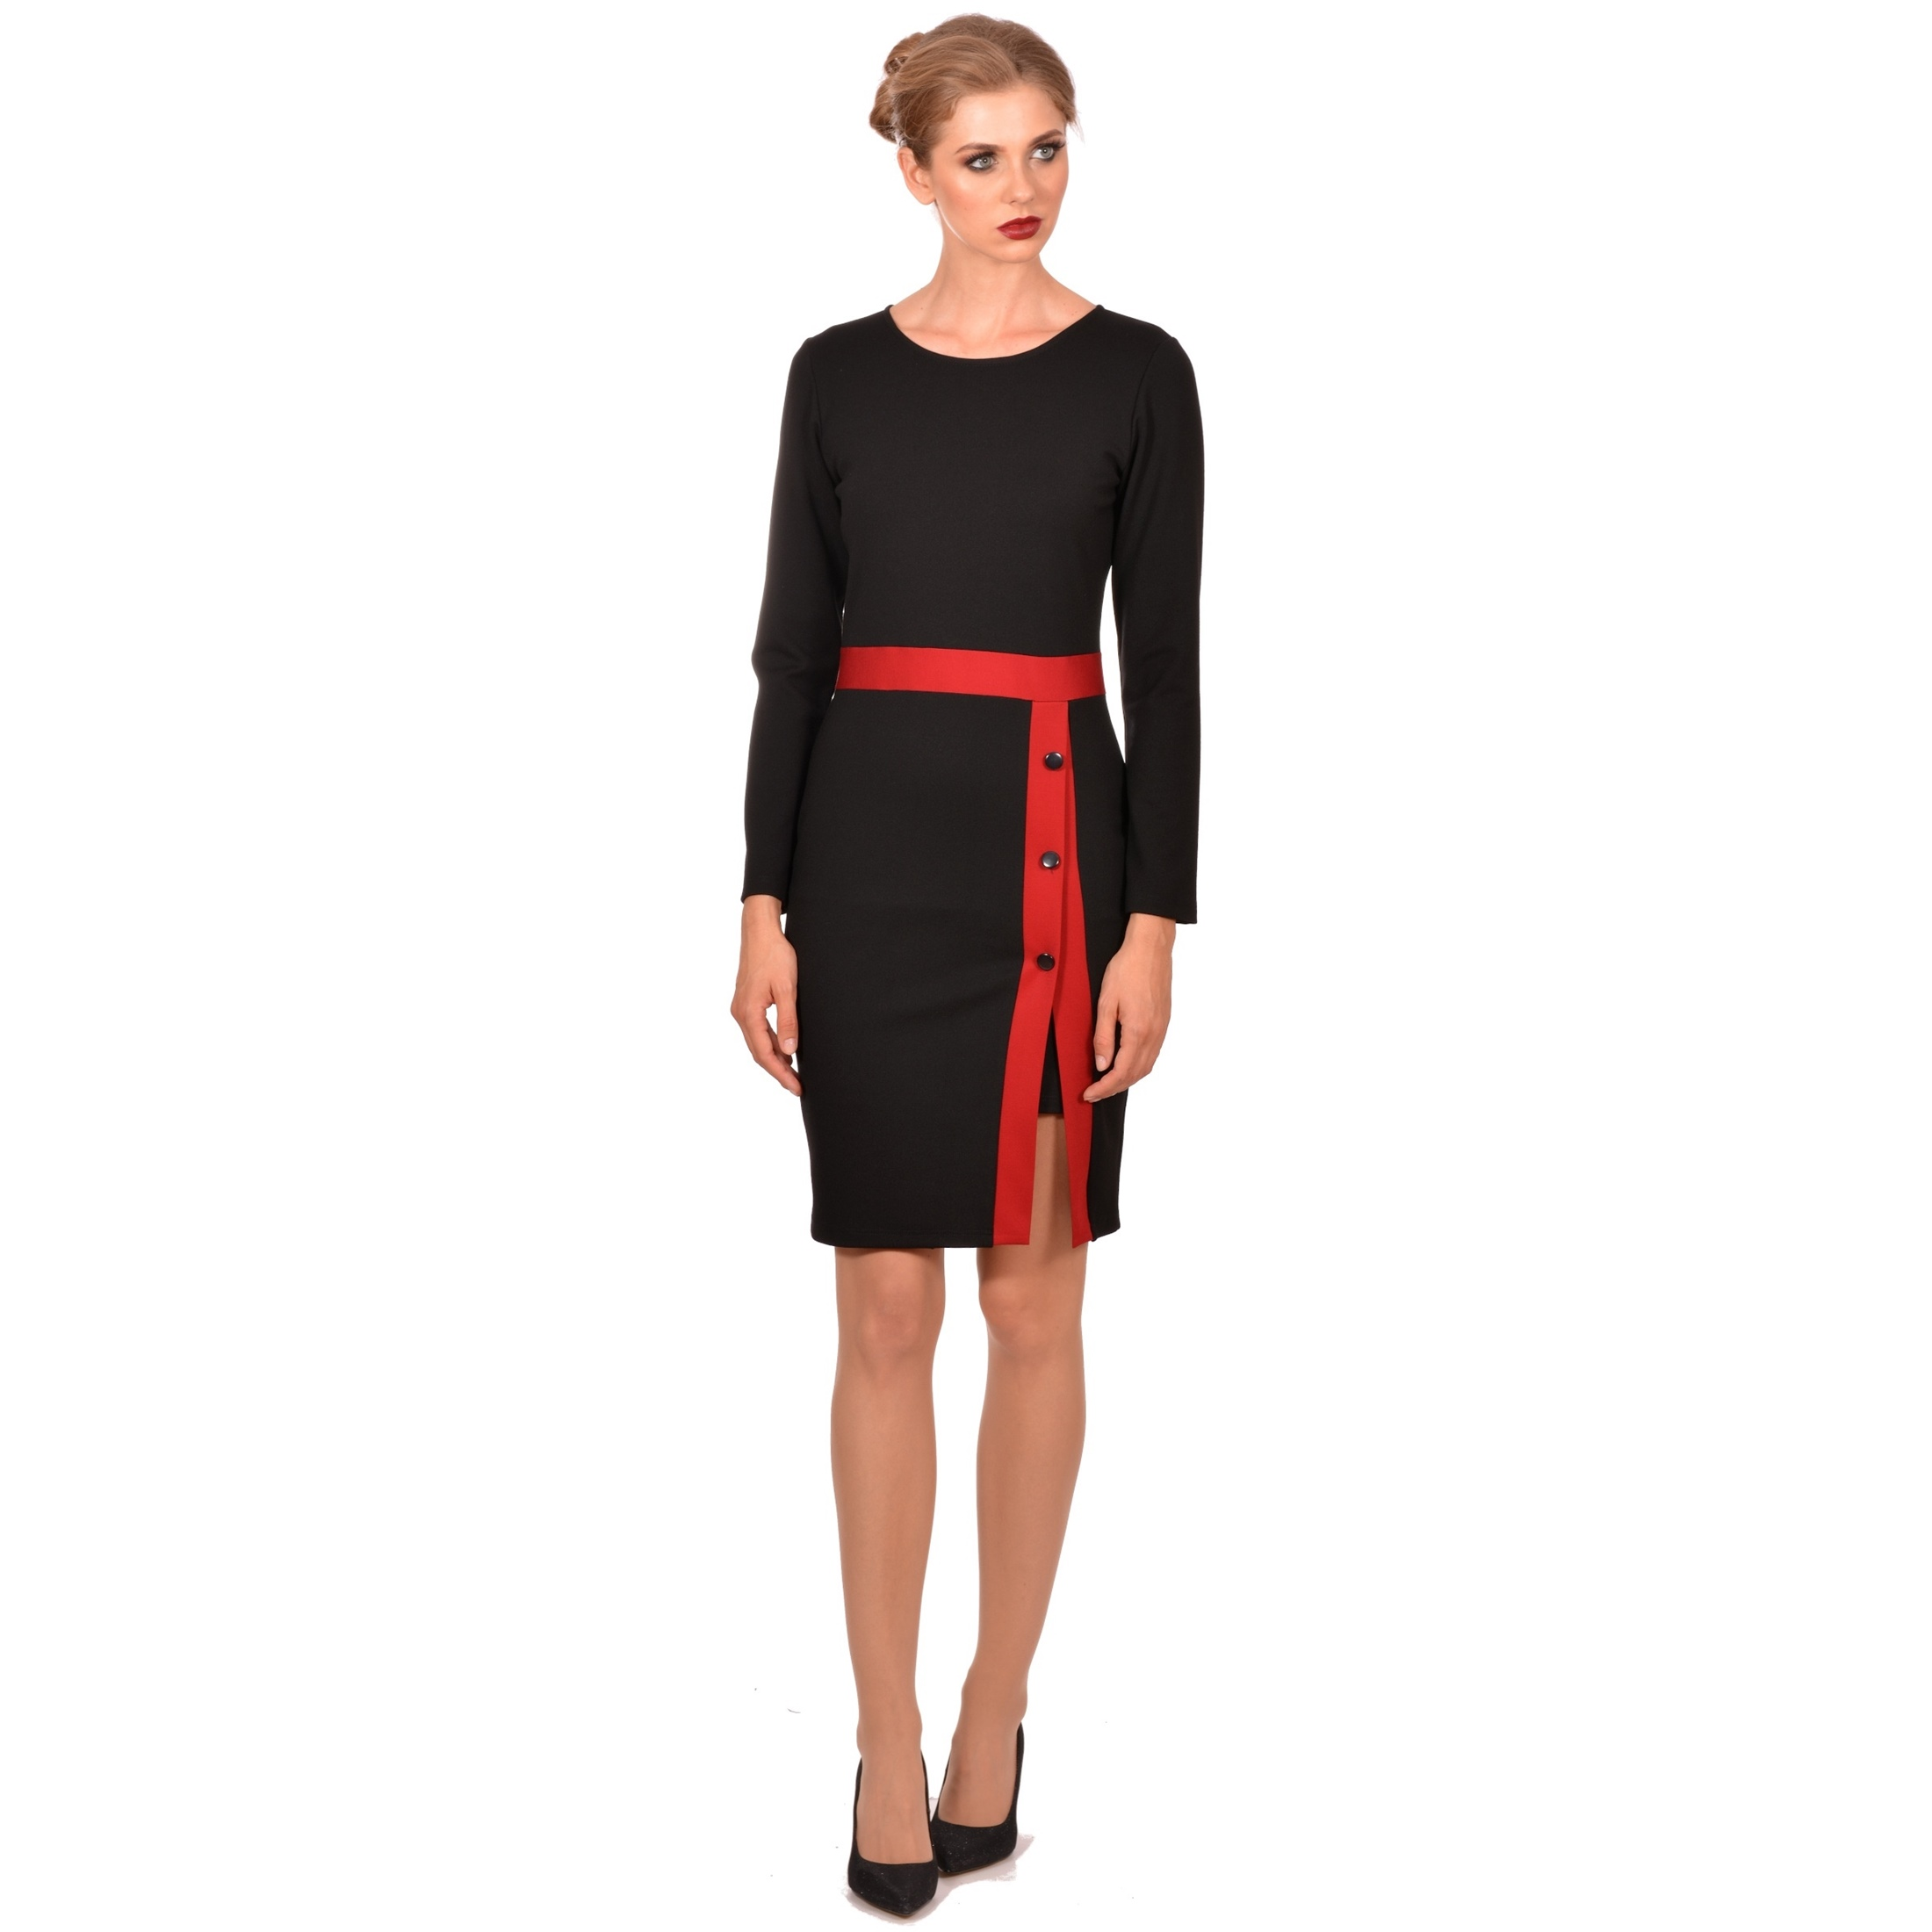 ženska crna haljina, women's black dress,modern dress